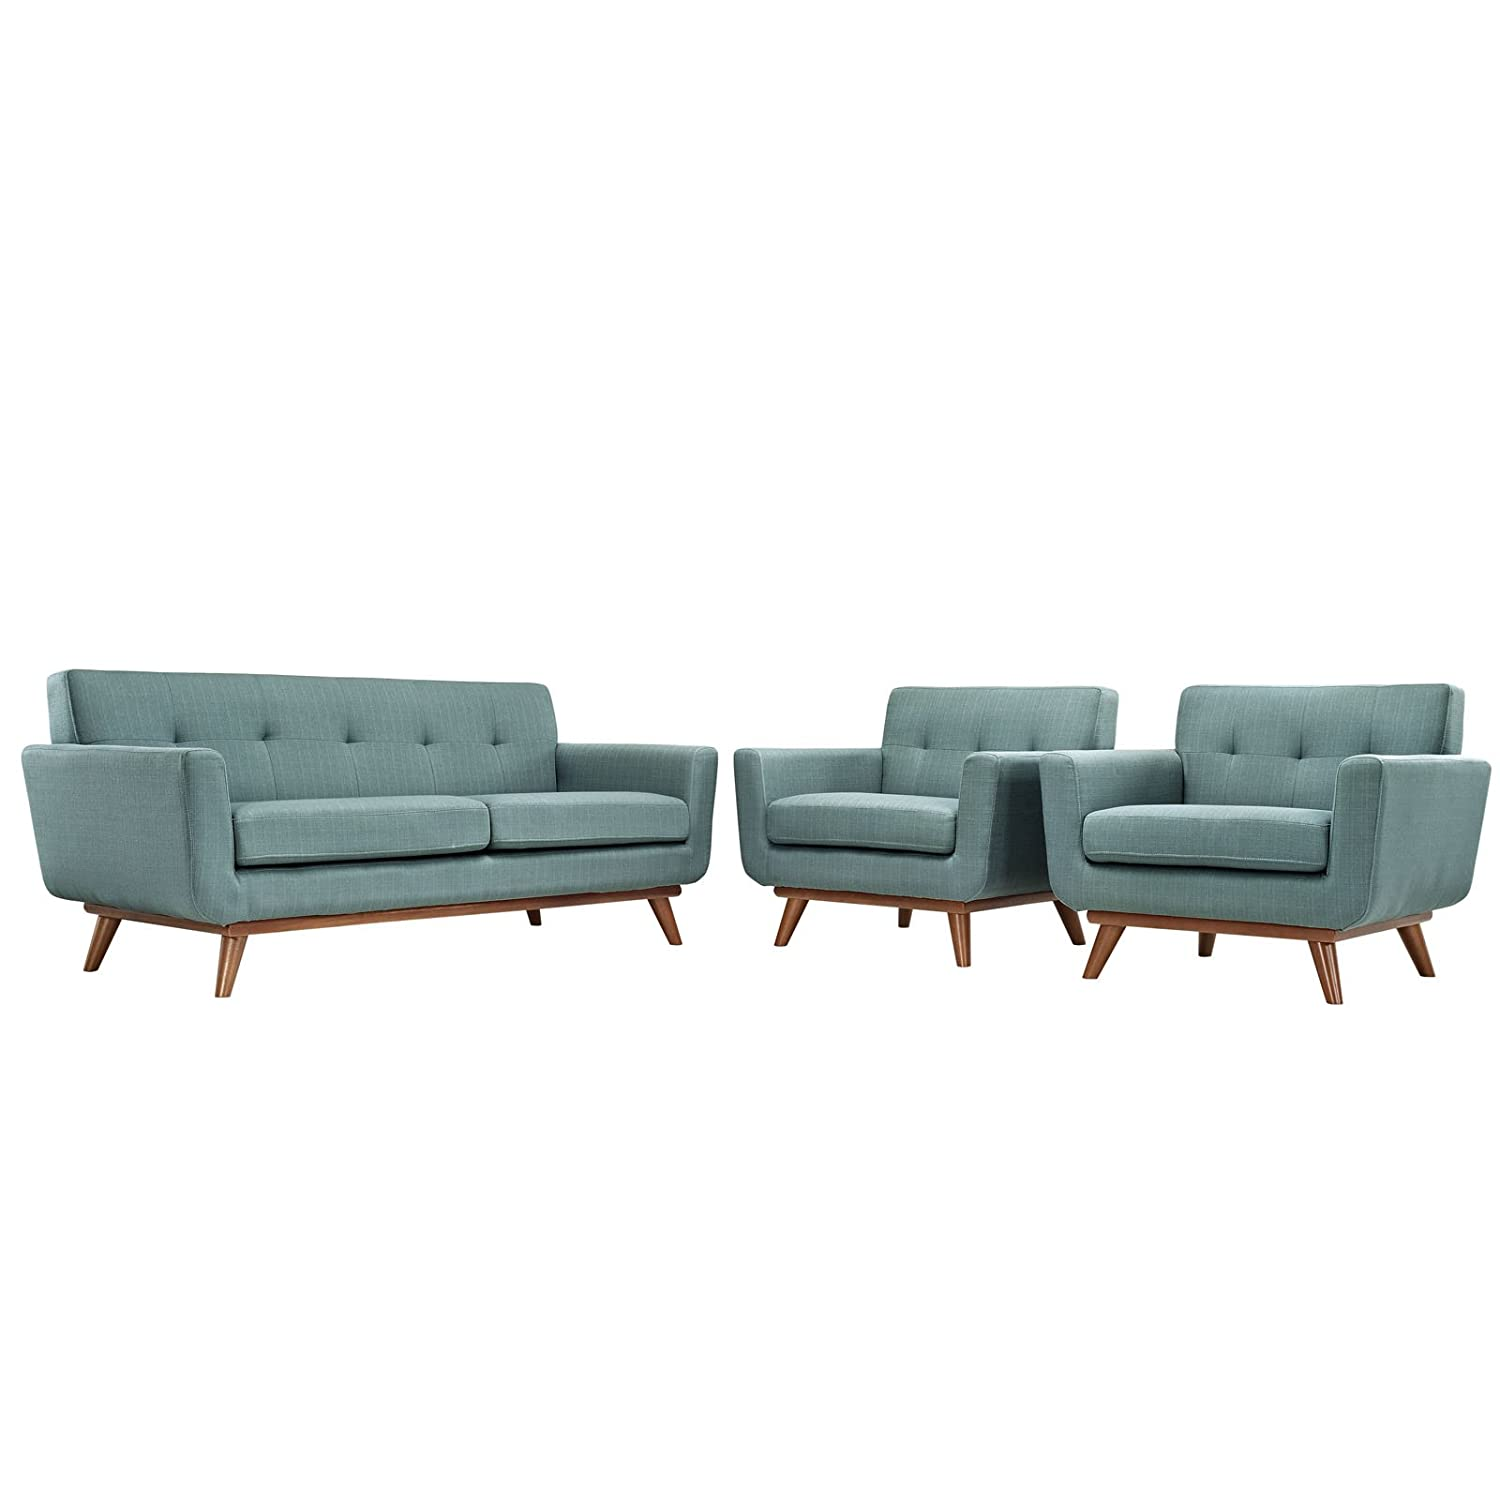 Modway Engage Armchairs and Loveseat - Laguna - Set of 3